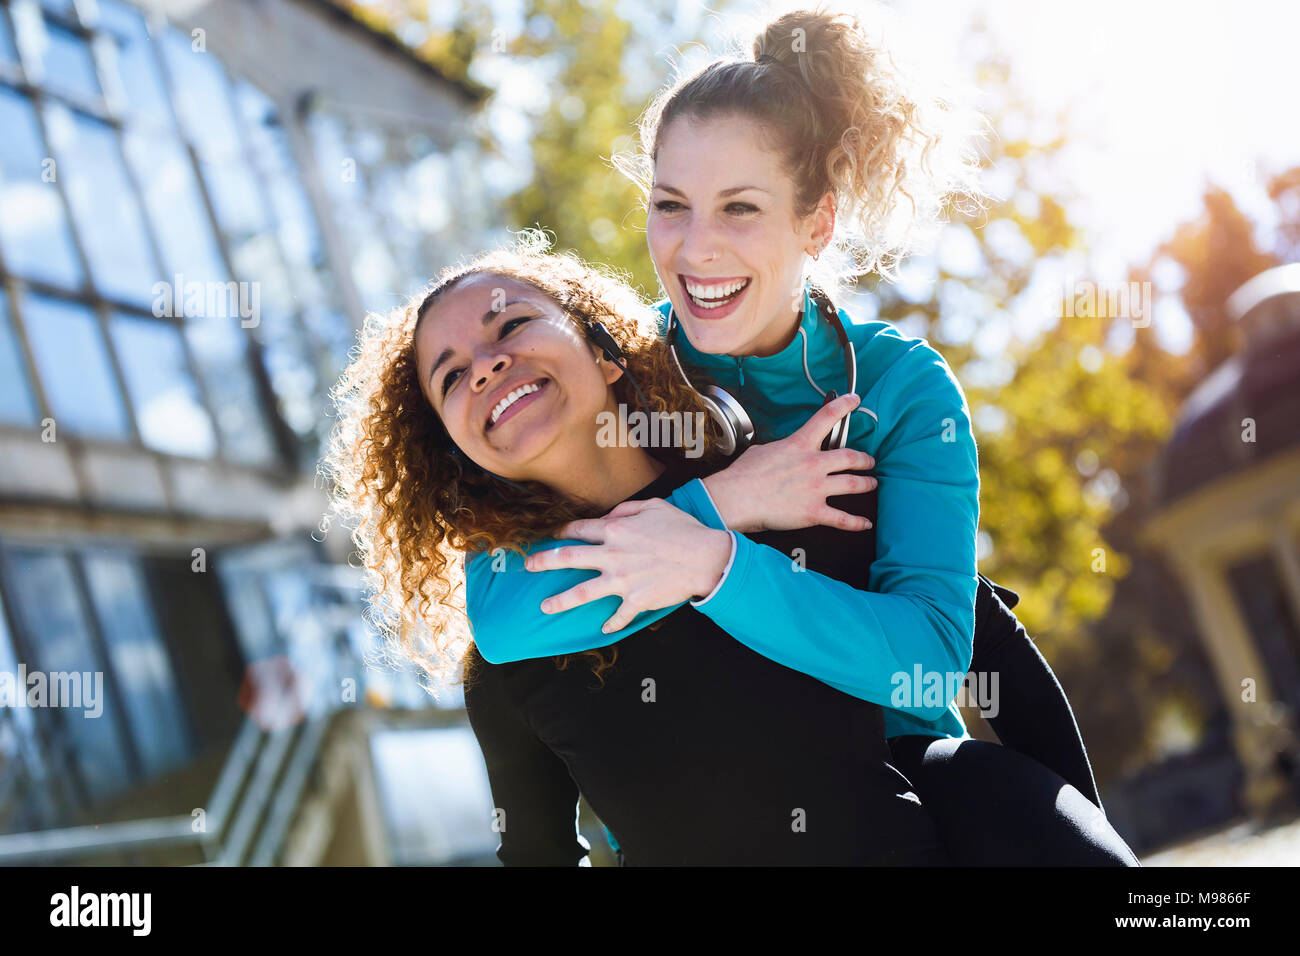 Happy young woman carrying ami piggyback Photo Stock